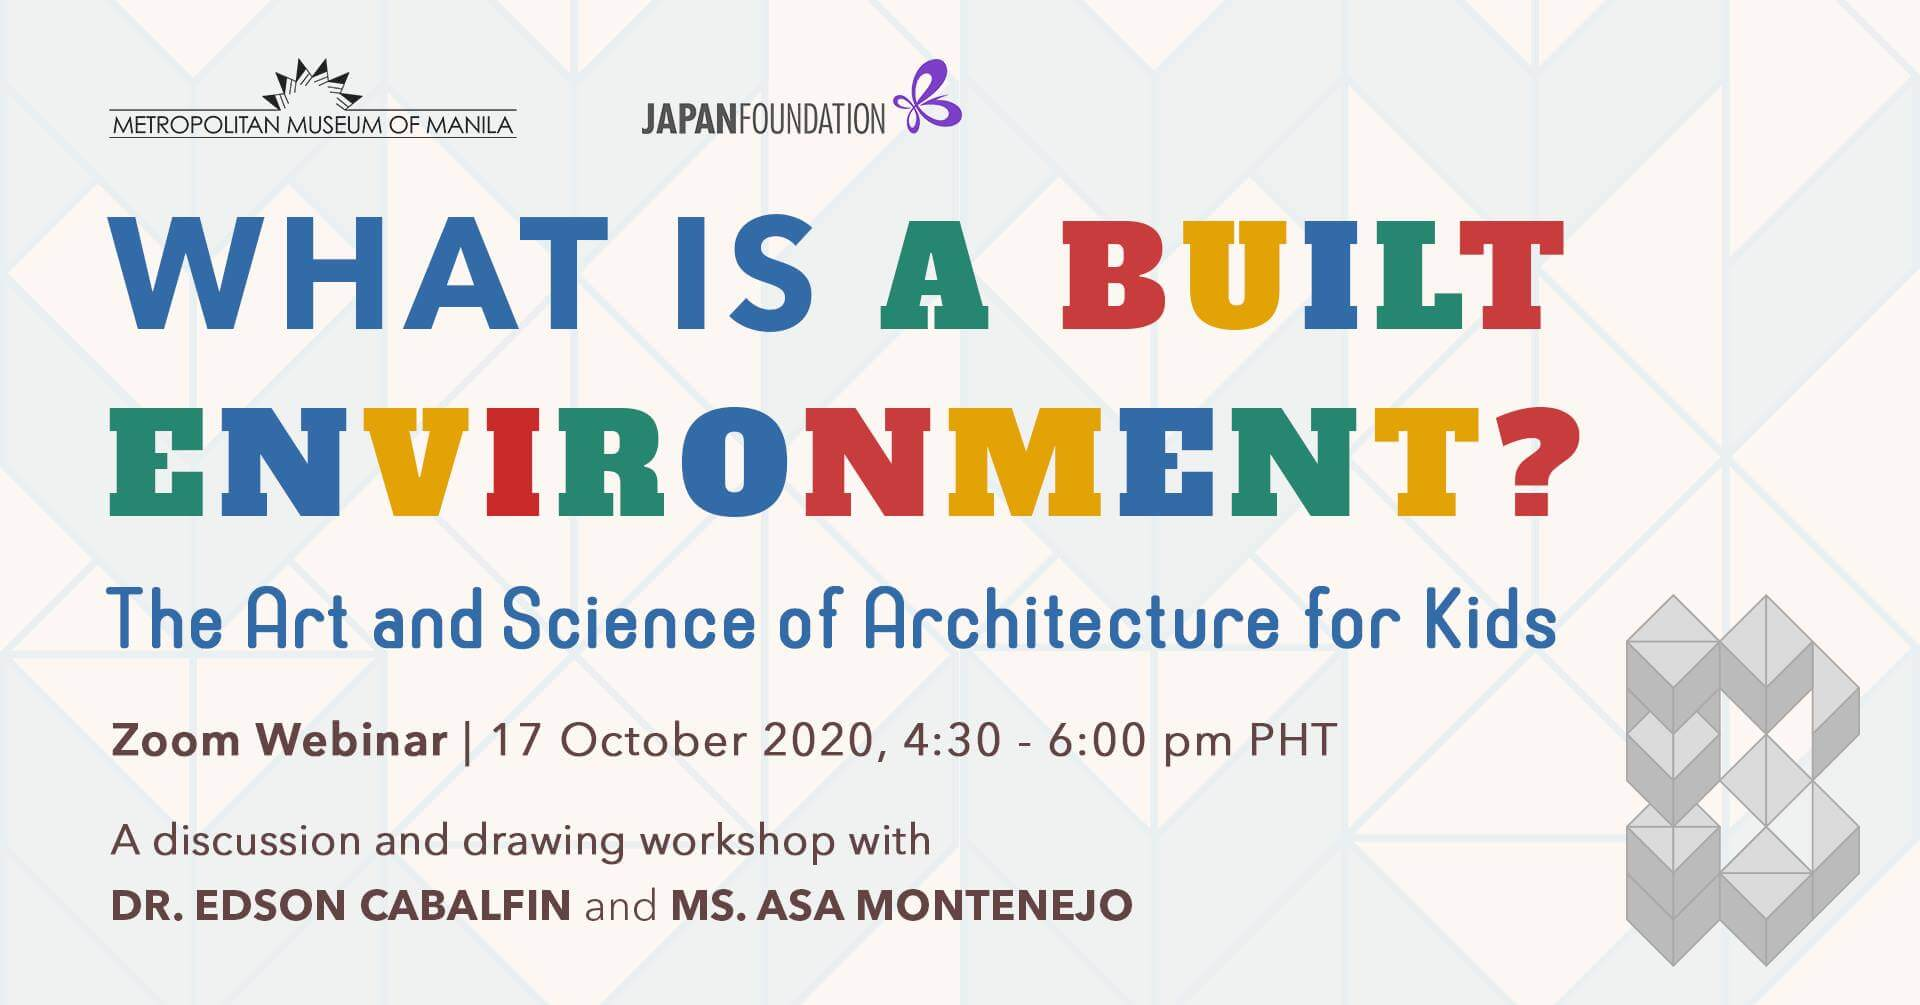 What is a Built Environment? The Art and Science of Architecture for Kids